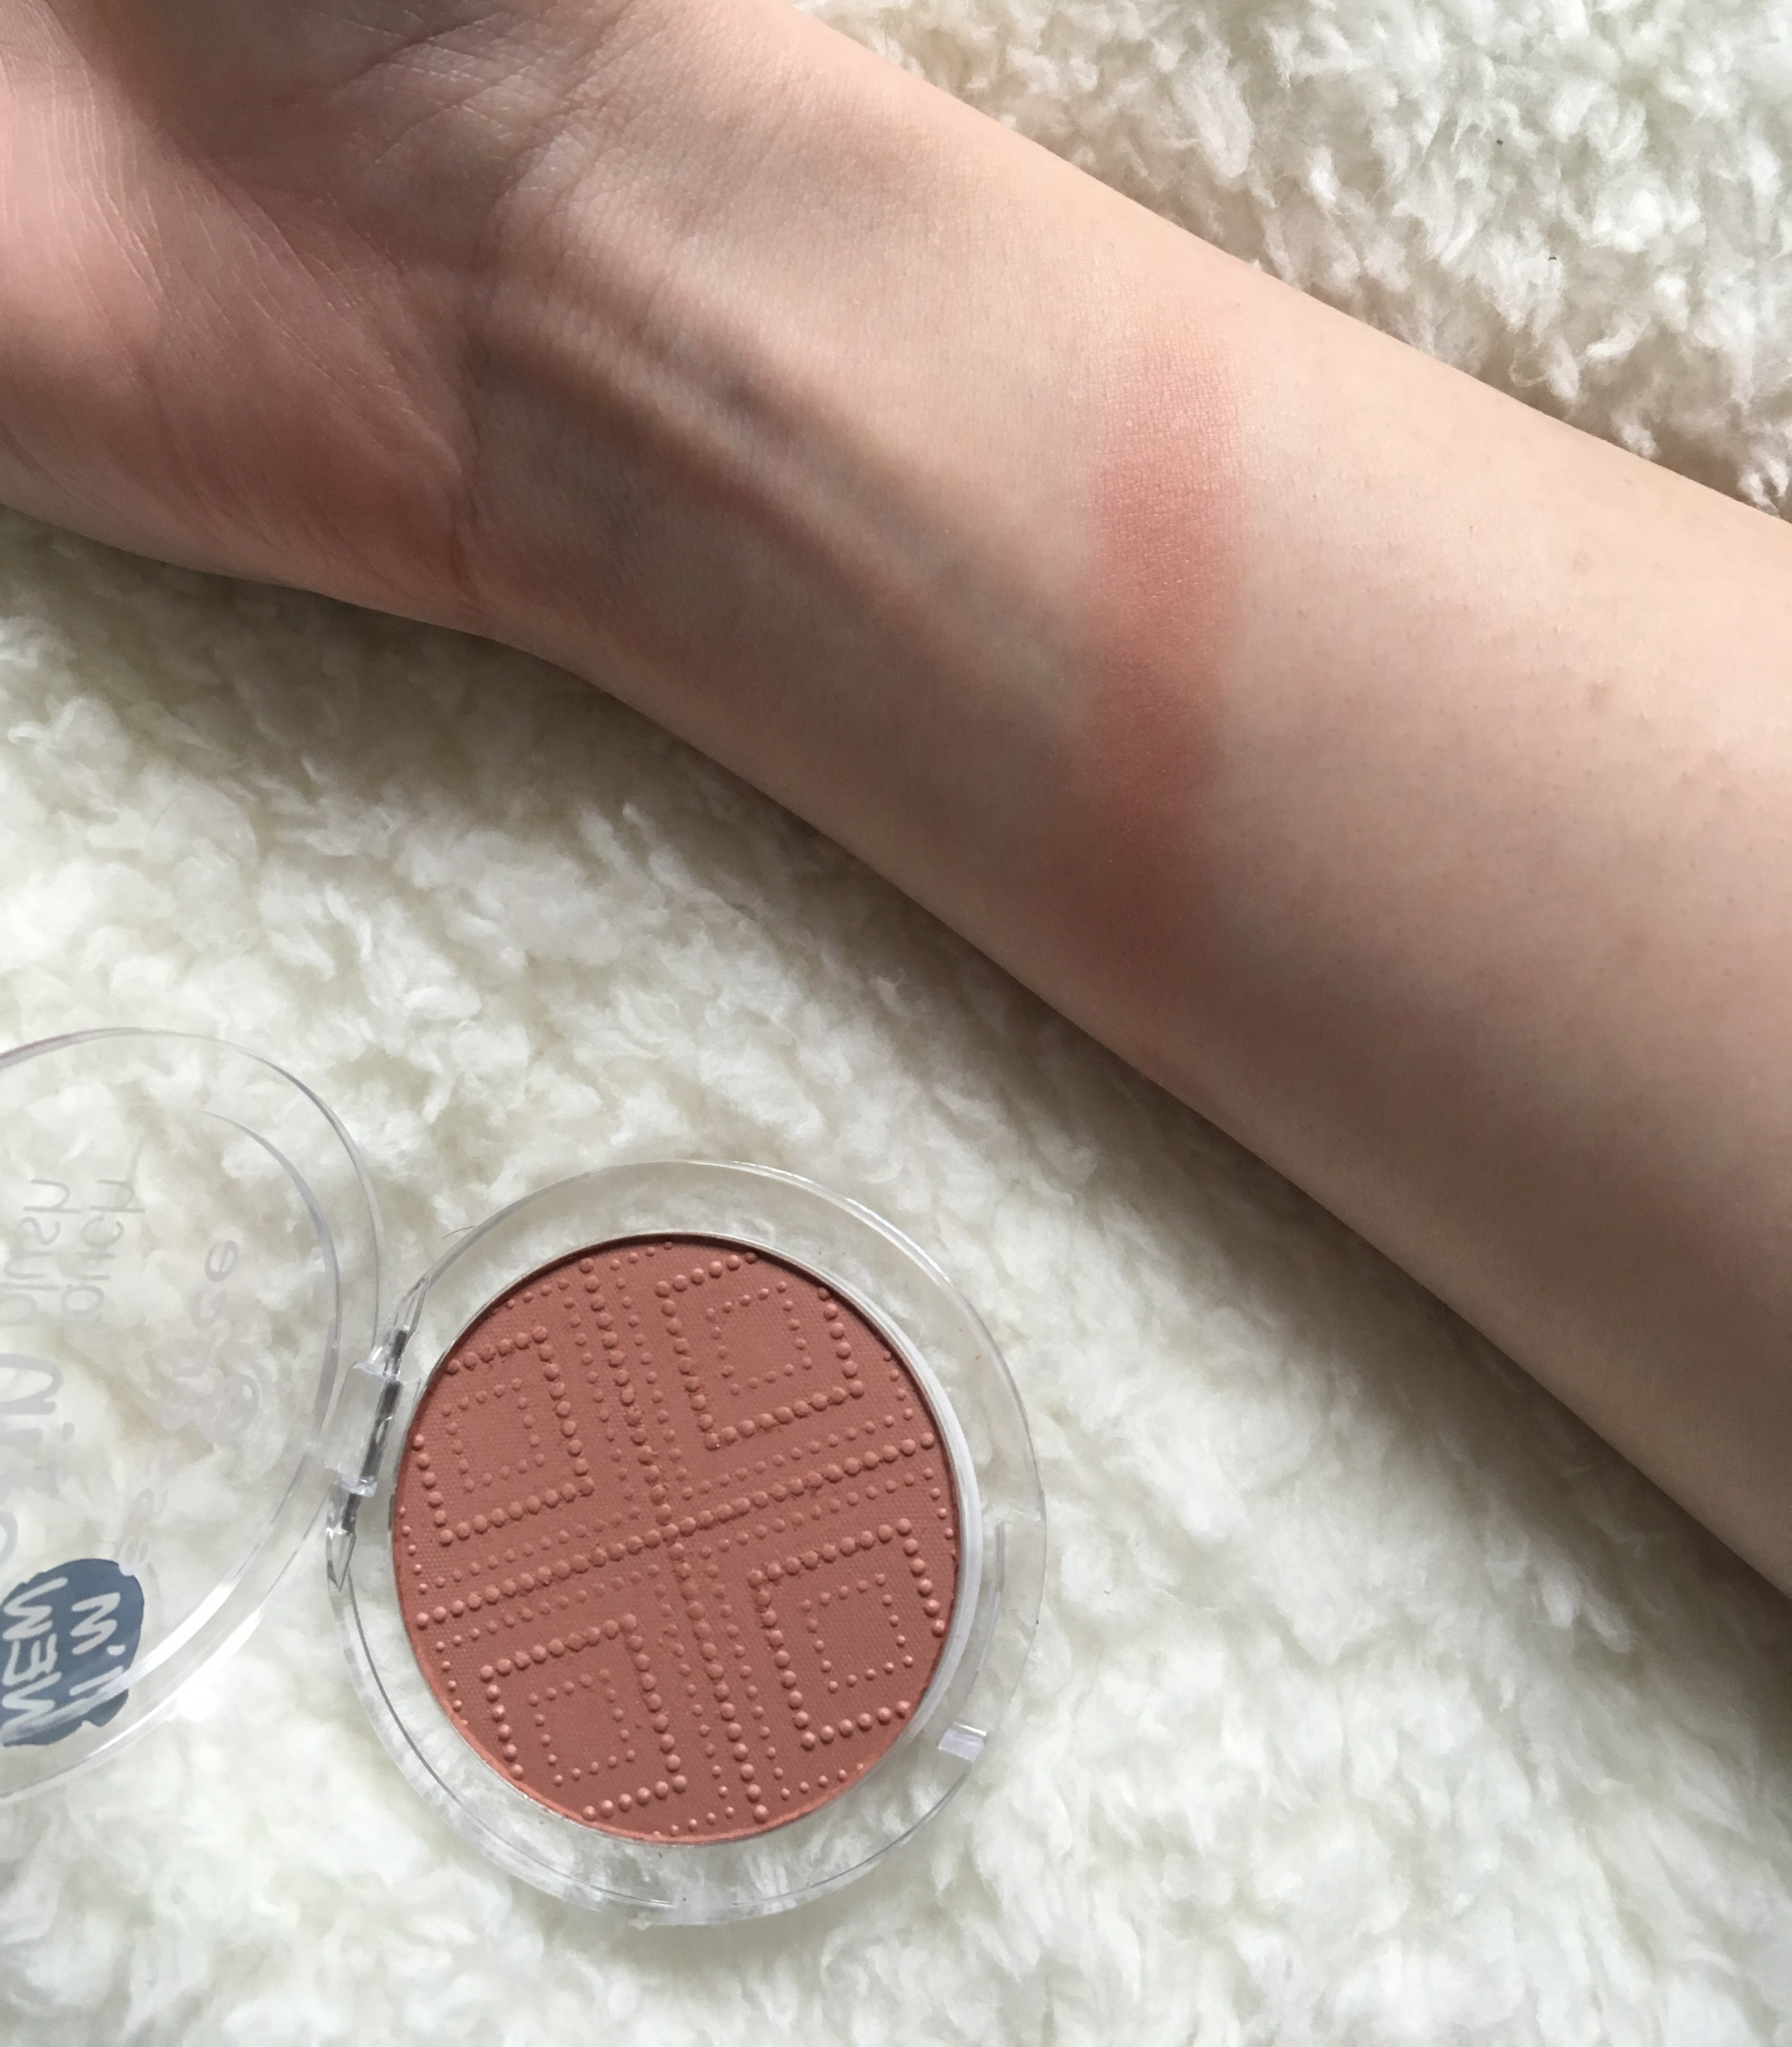 8-essence-satin-touch-blush-review-365-beauty-tips